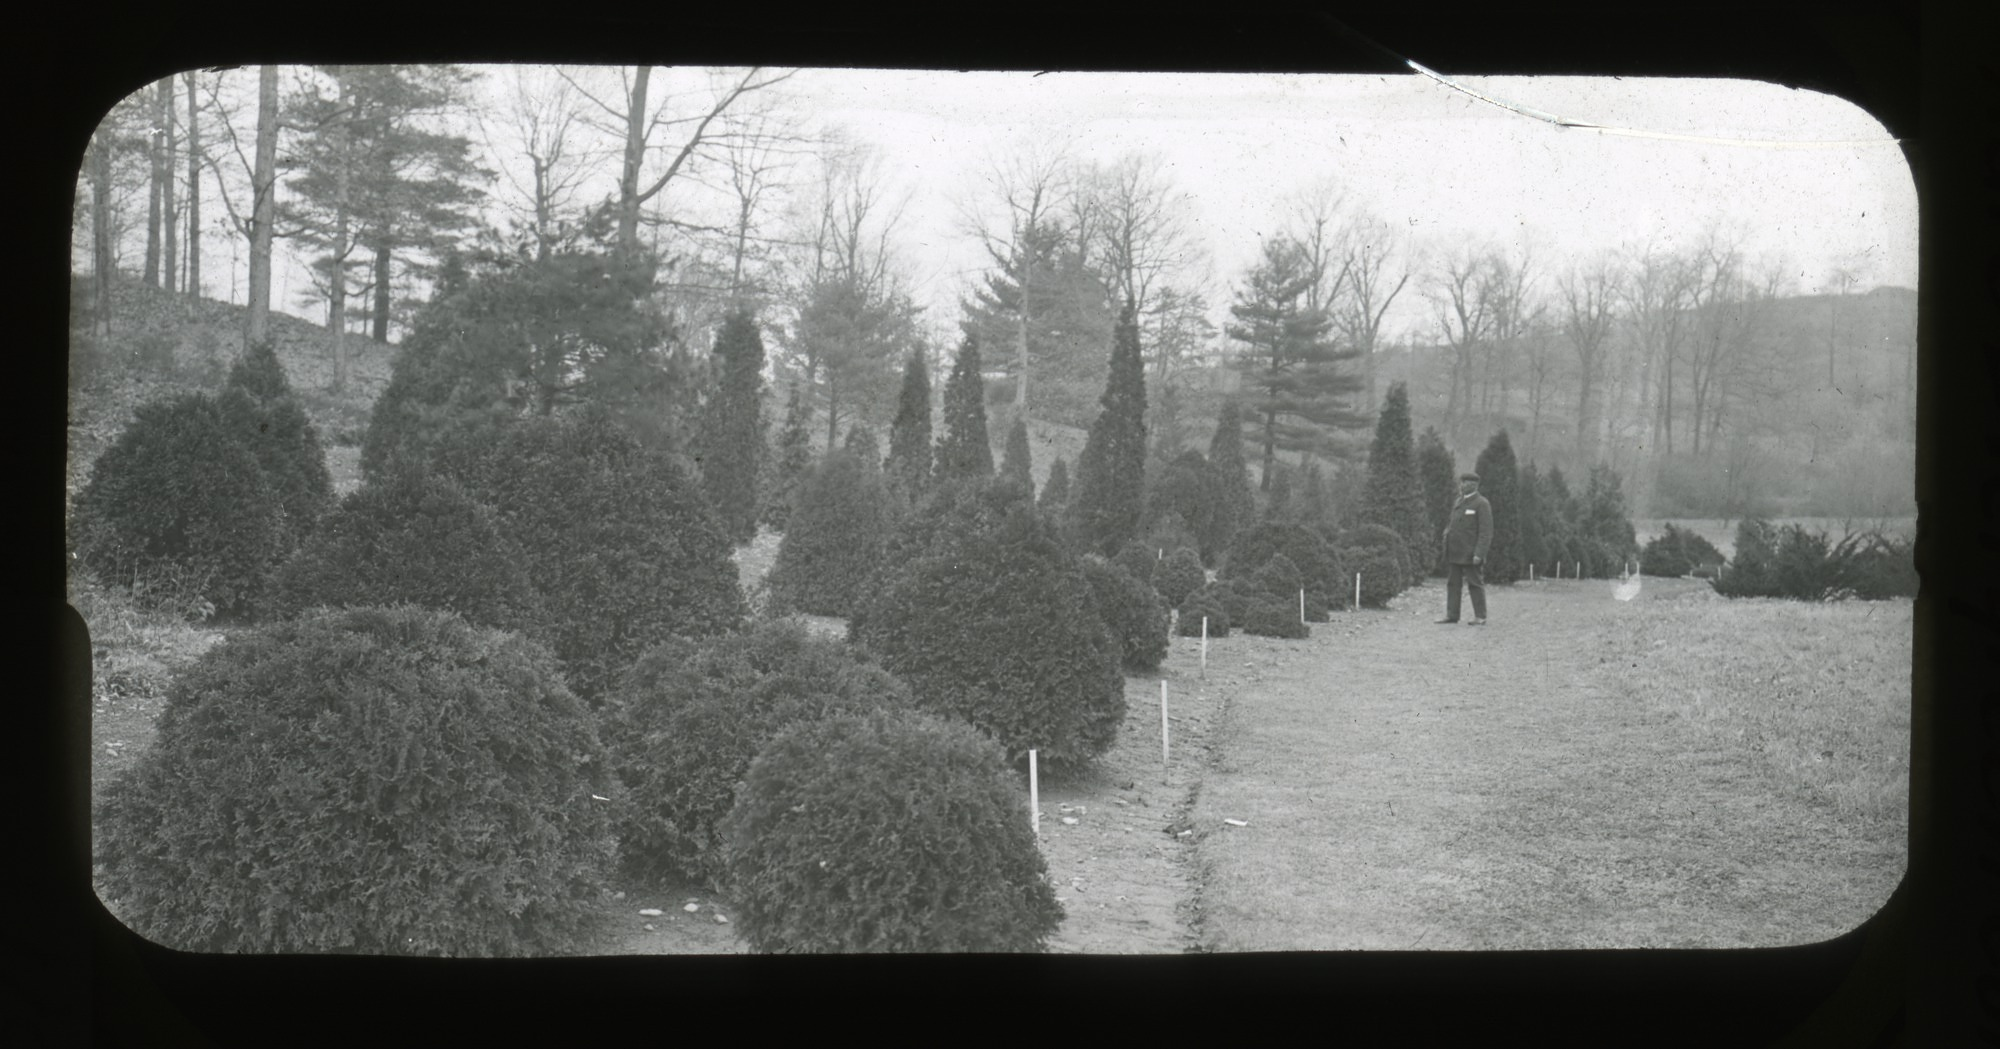 Tree collection at Arnold Arboretum, Jamaica Plain, Massachusetts